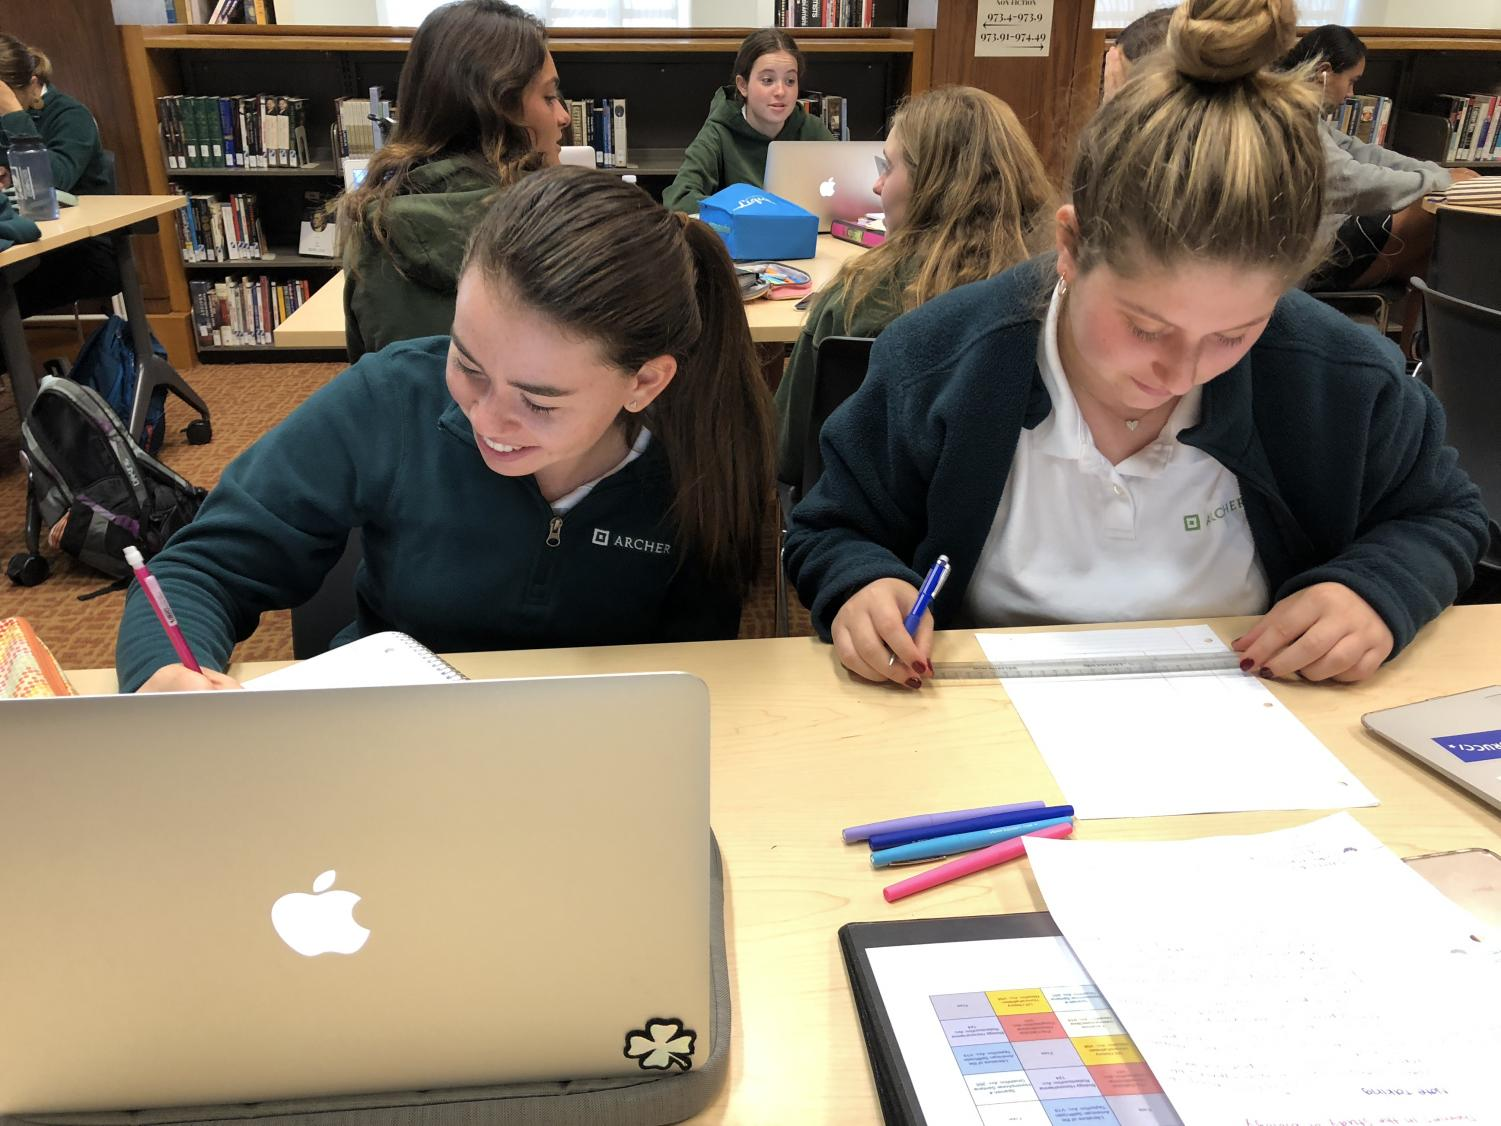 Arianna Miller and Julia Wanger '20 organize their notes to prepare for the year ahead.